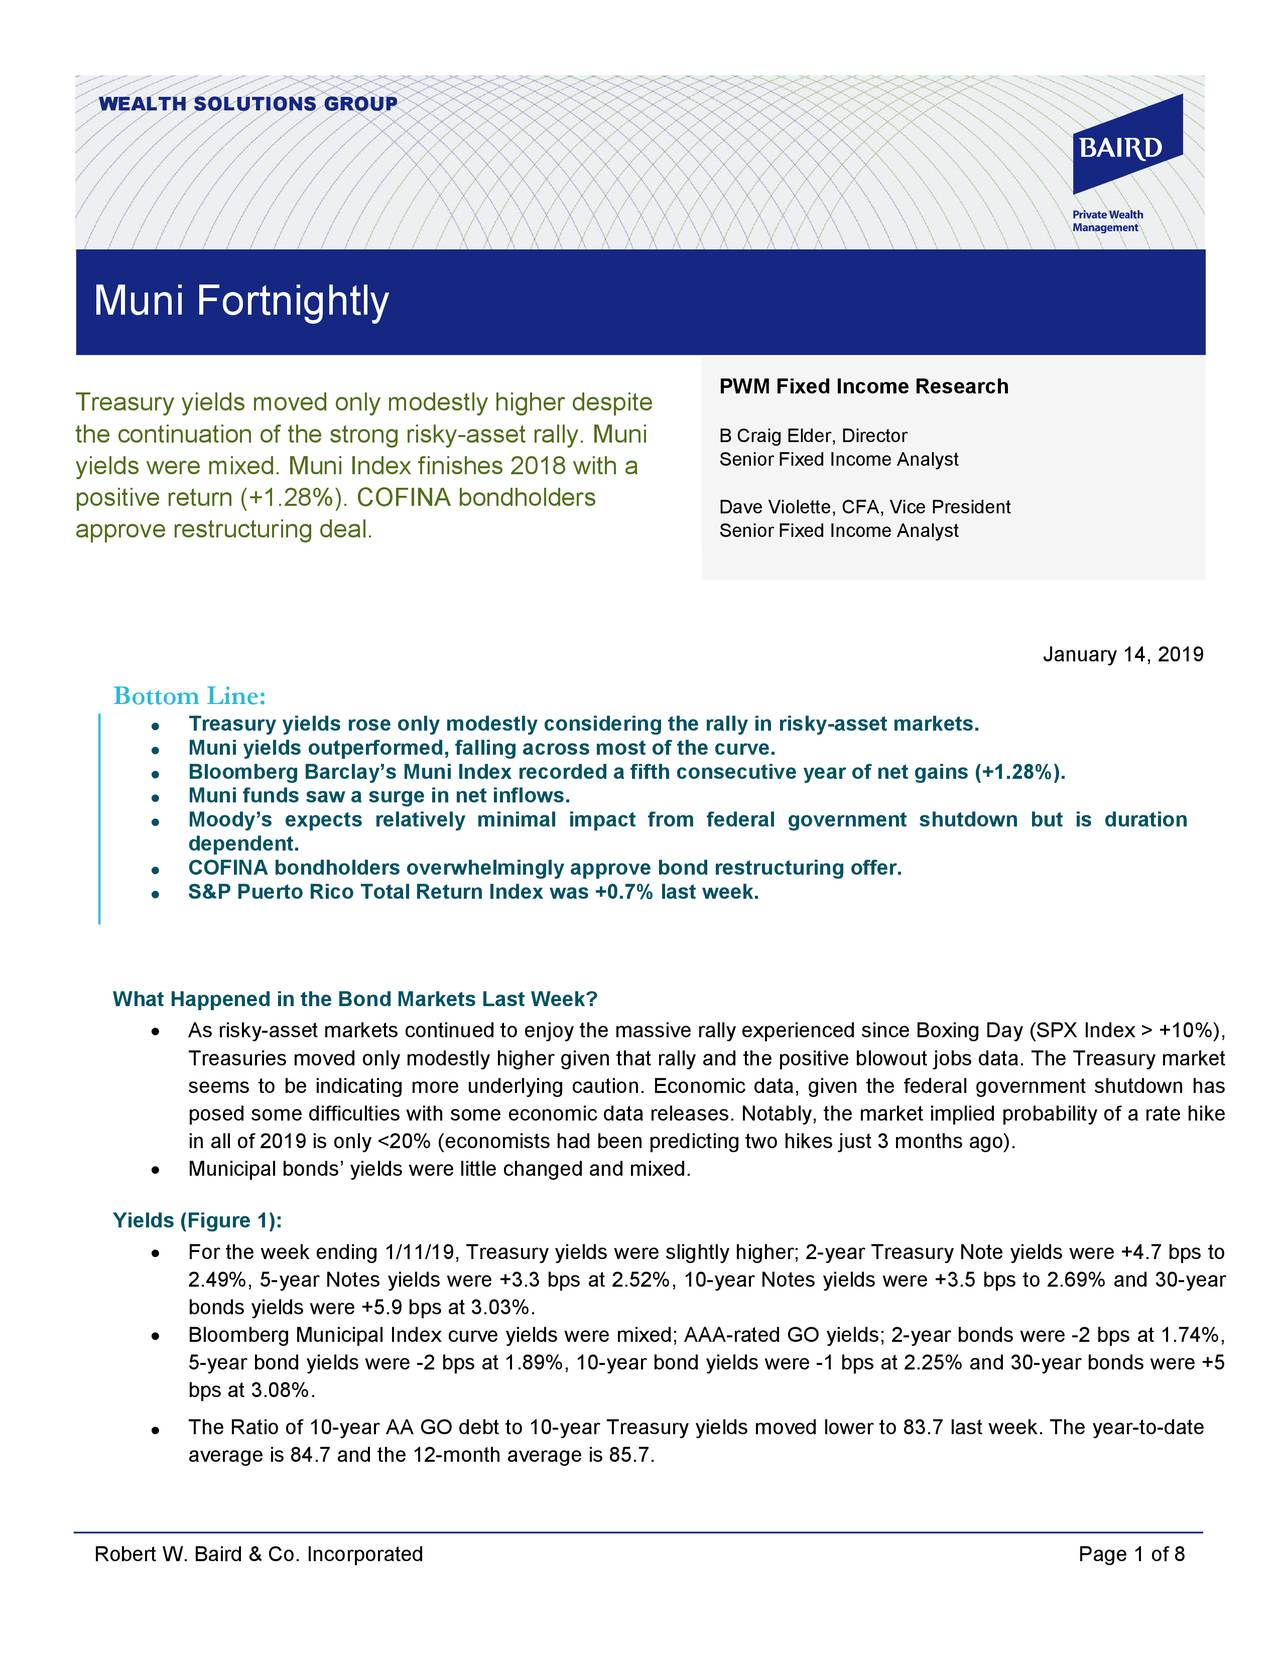 Muni Fortnightly PWM Fixed Income Research Treasury yields moved only modestly higher despite the continuation of the strong risky-asset rally. Muni David N. Violette, CFA, Vice President Senior Fixed Income Analyst yields were mixed. Muni Index finishes 2018 with a Senior Fixed Income Analyst positive return (+1.28%). COFINA bondholders Dave Violette, CFA, Vice President approve restructuring deal. Senior Fixed Income Analyst January 14, 2019 Bottom Line: • Treasury yields rose only modestly considering the rally in risky-asset markets. • Muni yields outperformed, falling across most of the curve. • Bloomberg Barclay's Muni Index recorded a fifth consecutive year of net gains (+1.28%). • Muni funds saw a surge in net inflows. Moody's expects relatively minimal impact from federal government shutdown but is duration • dependent. • COFINA bondholders overwhelmingly approve bond restructuring offer. • S&P Puerto Rico Total Return Index was +0.7% last week. What Happened in the Bond Markets Last Week? • As risky-asset markets continued to enjoy the massive rally experienced since Boxing Day (SPX Index >+10%), Treasuries moved only modestly higher given that rally and the positive blowout jobs data. The Treasury market seems to be indicating more underlying caution. Economic data, given the federal government shutdown has posed some difficulties with some economic data releases. Notably, the market implied probability of a rate hike in all of 2019 is only <20% (economists had been predicting two hikes just 3 months ago). • Municipal bonds' yields were little changed and mixed. Yields (Figure 1): • For the week ending 1/11/19, Treasury yields were slightly higher; 2-year Treasury Note yields were +4.7 bps to 2.49%, 5-year Notes yields were +3.3 bps at 2.52%, 10- year Notes yields were +3.5 bps to 2.69% and 30- year bonds yields were +5.9 bps at 3.03%. • Bloomberg Municipal Index curve yields were mixed; AAA-rated GO yields; 2-year bonds were -2 bps at 1.74%, 5-year bond 